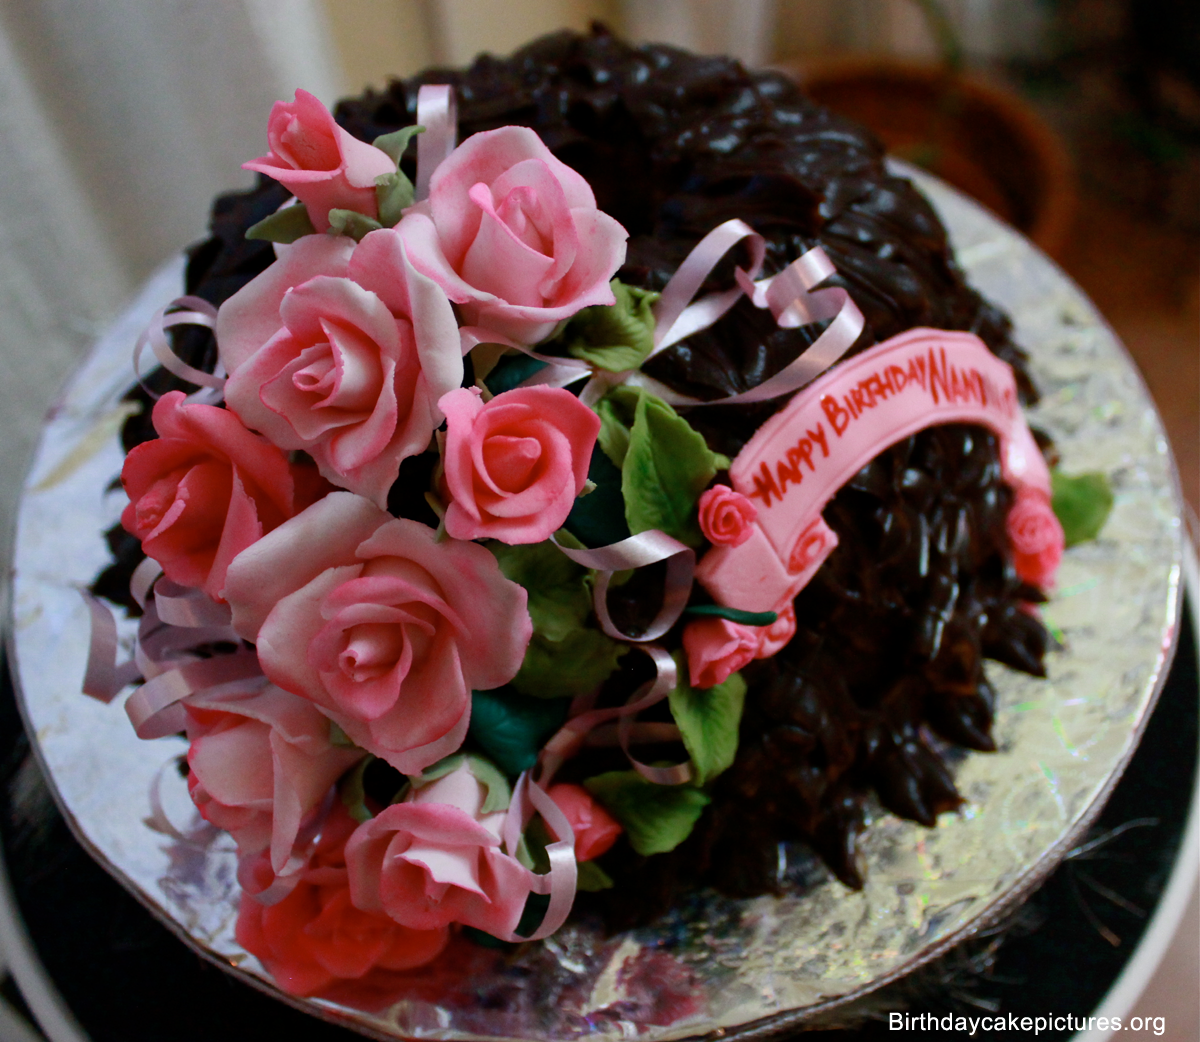 Chocolate birthday cake with flowers birthday cake pinterest chocolate birthday cake with flowers dhlflorist Image collections